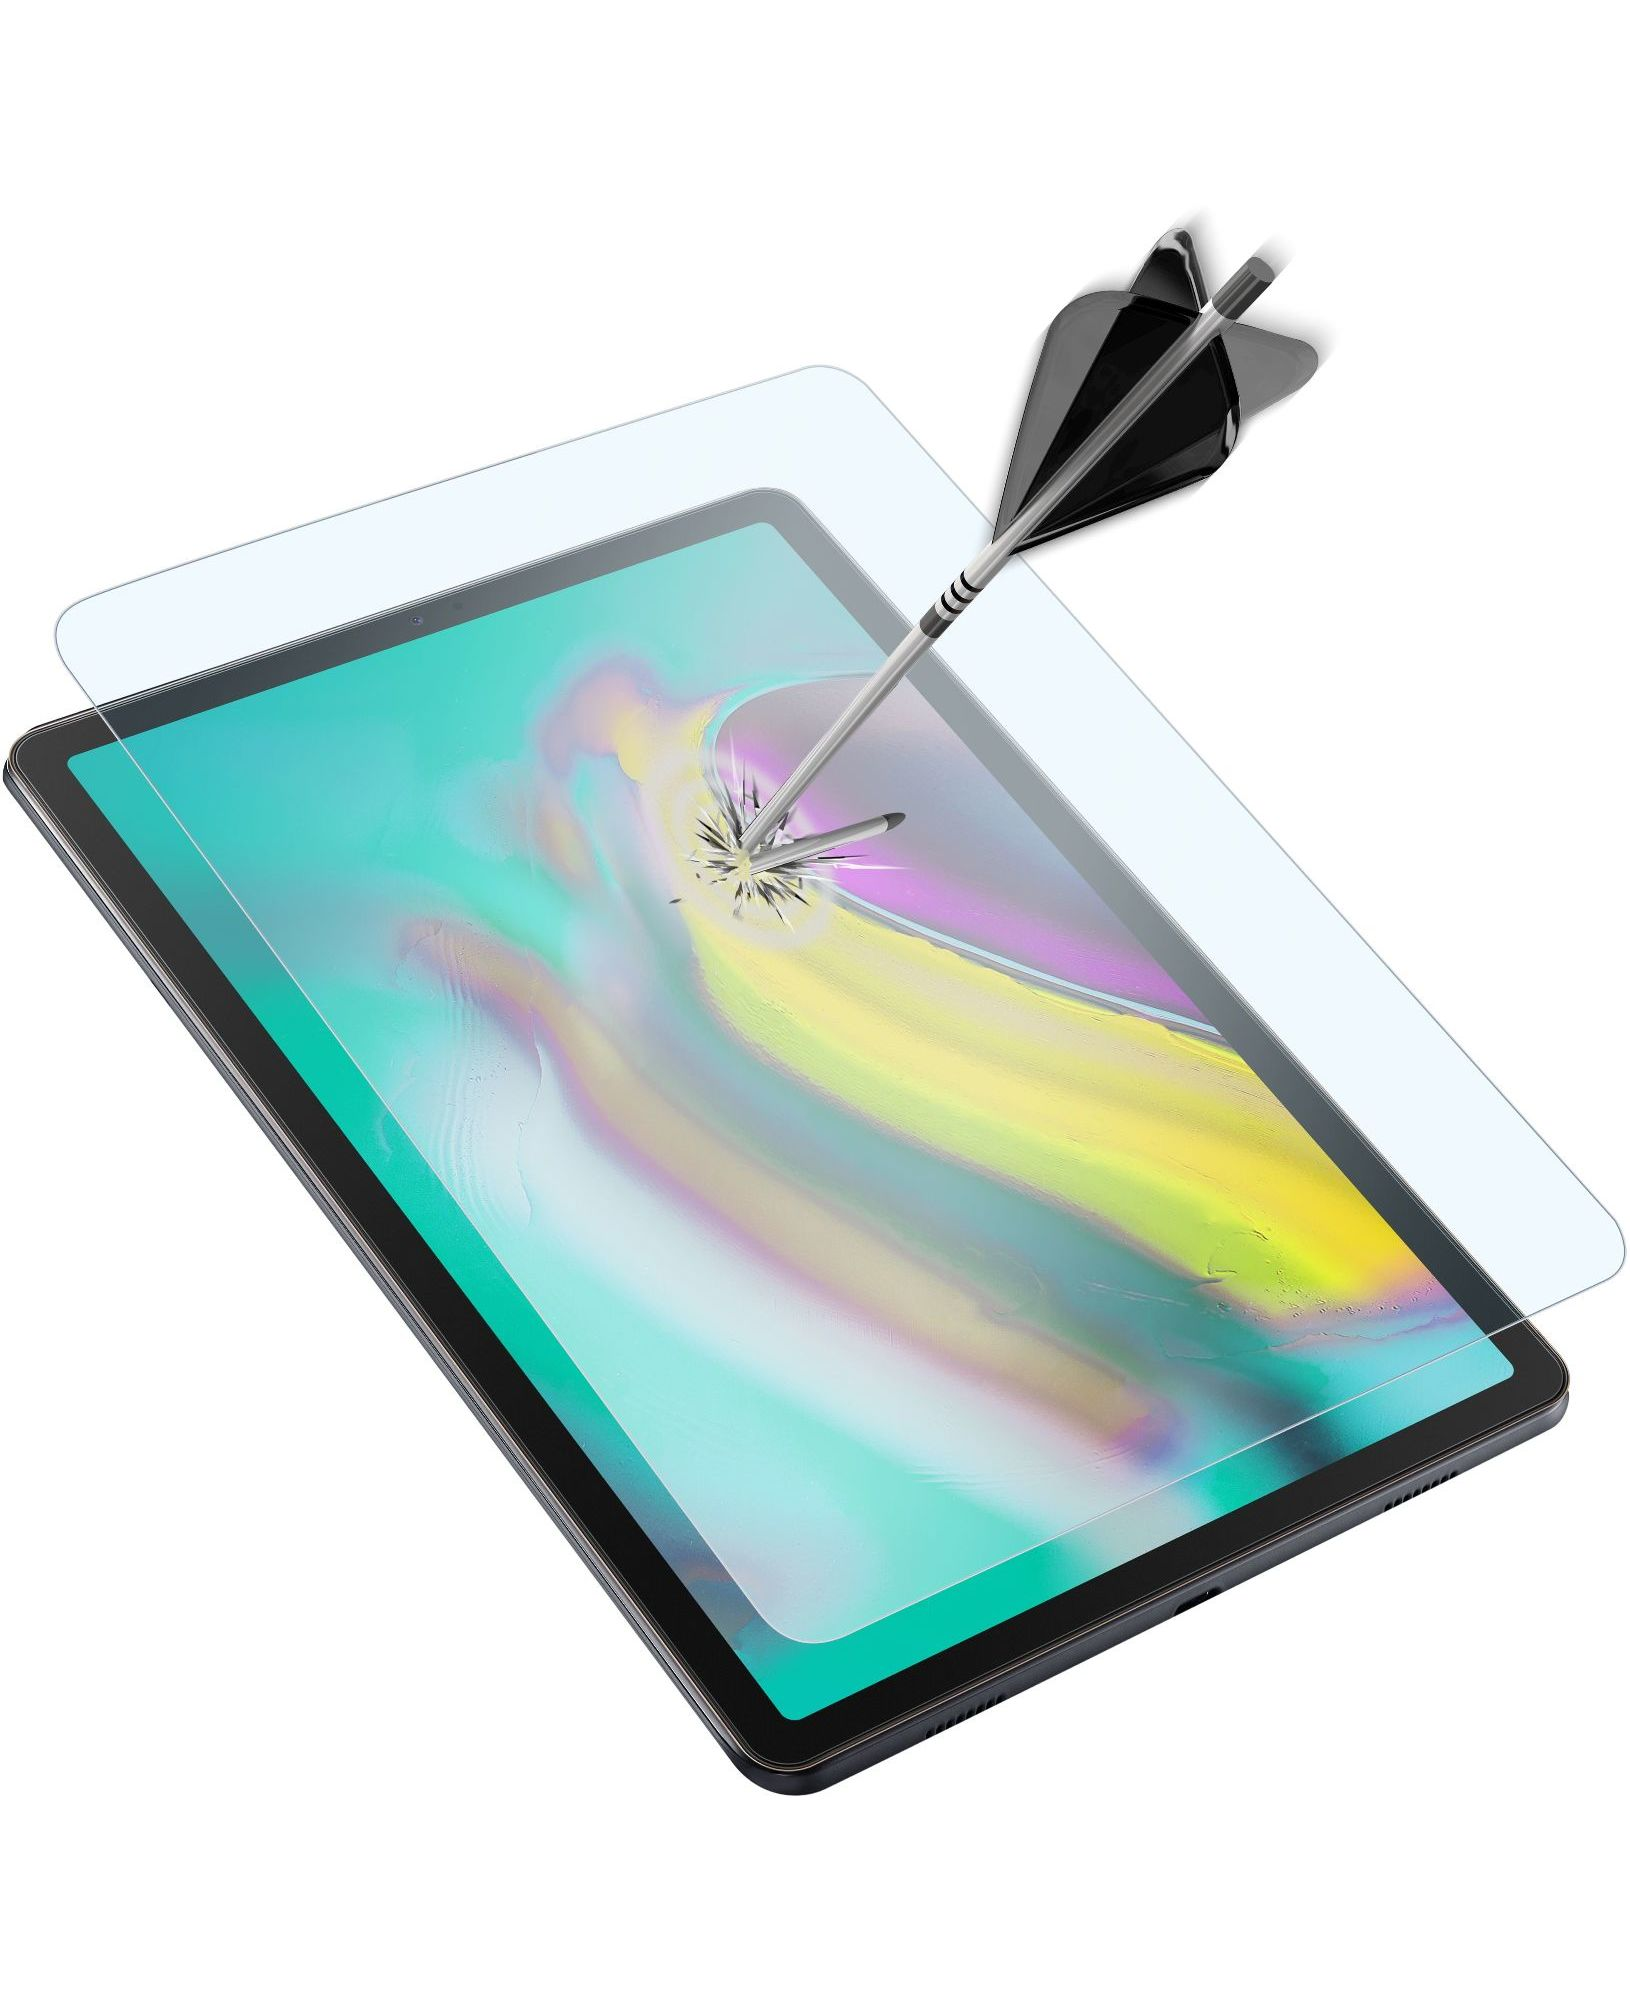 Samsung Galaxy Tab A 10.1 (2019), SP second glass, transparent